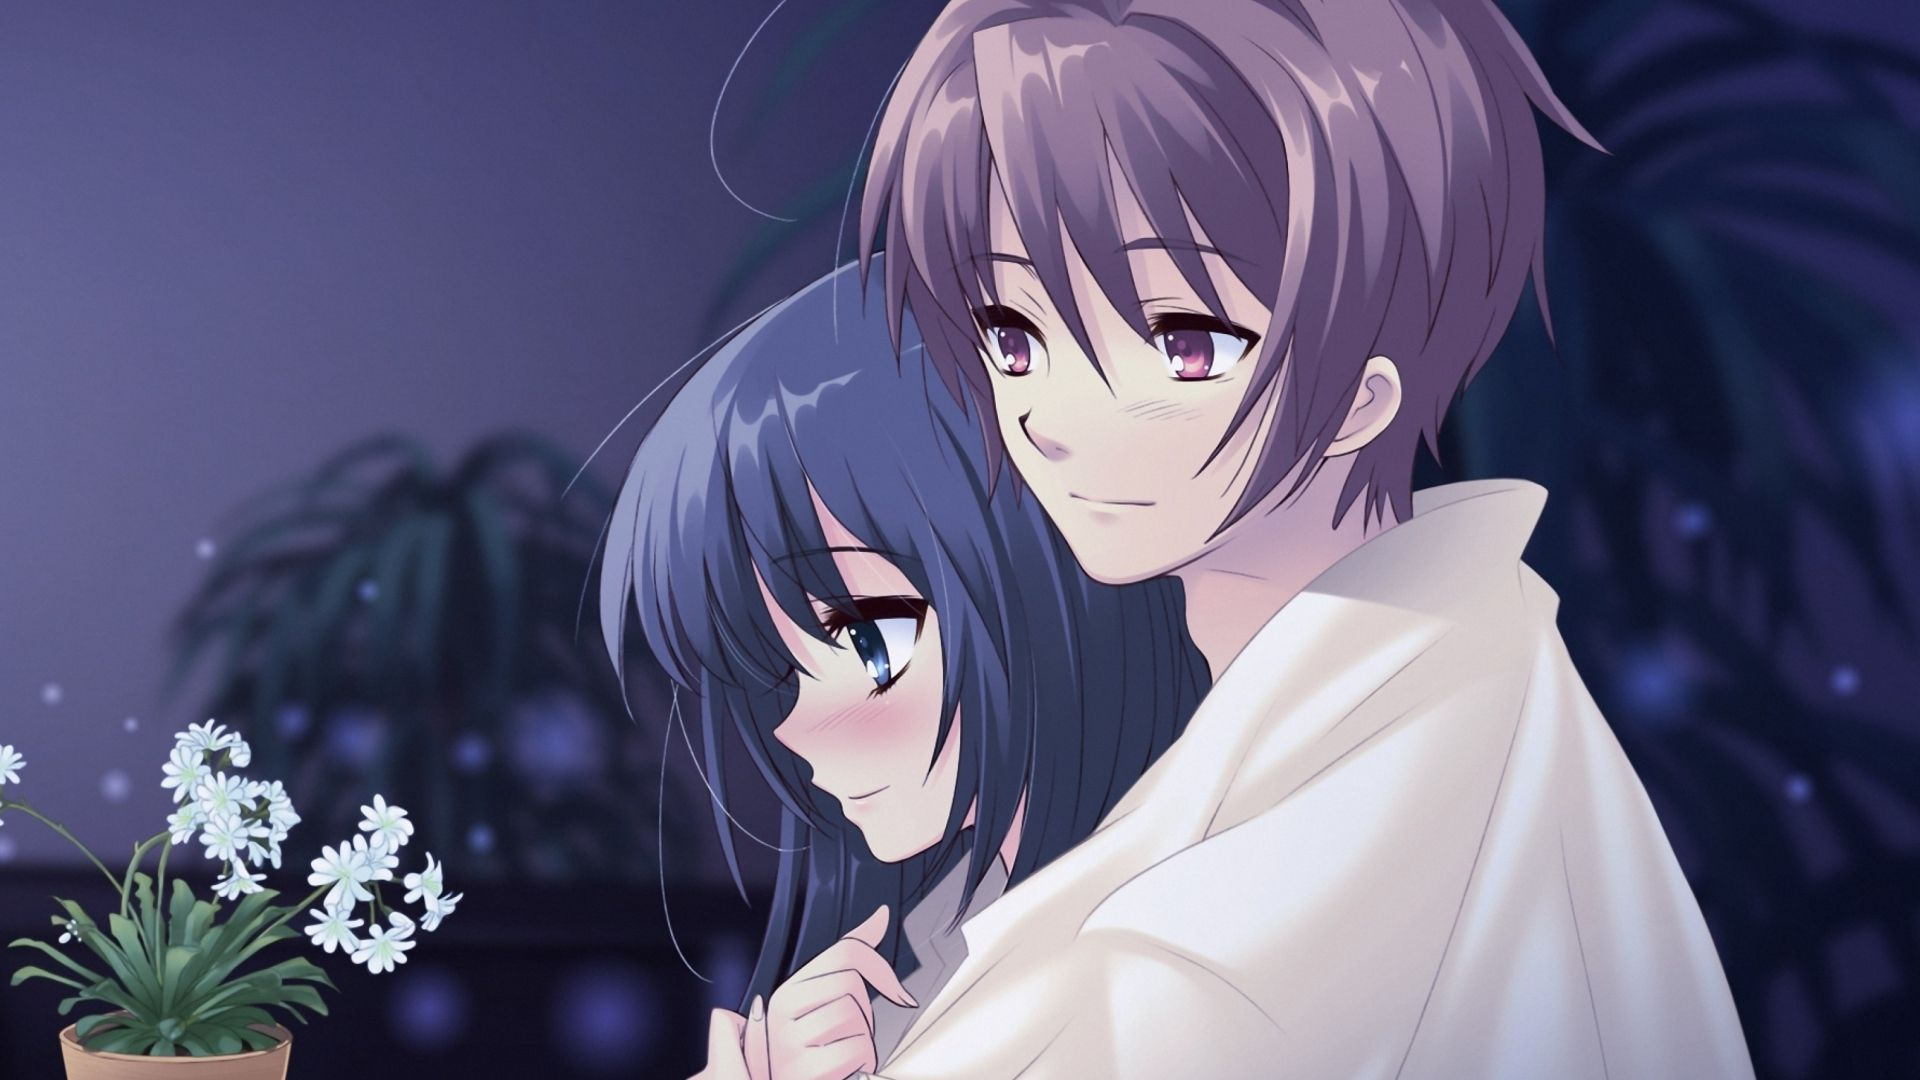 Beautiful Anime Couple Wallpaper HD Images One HD